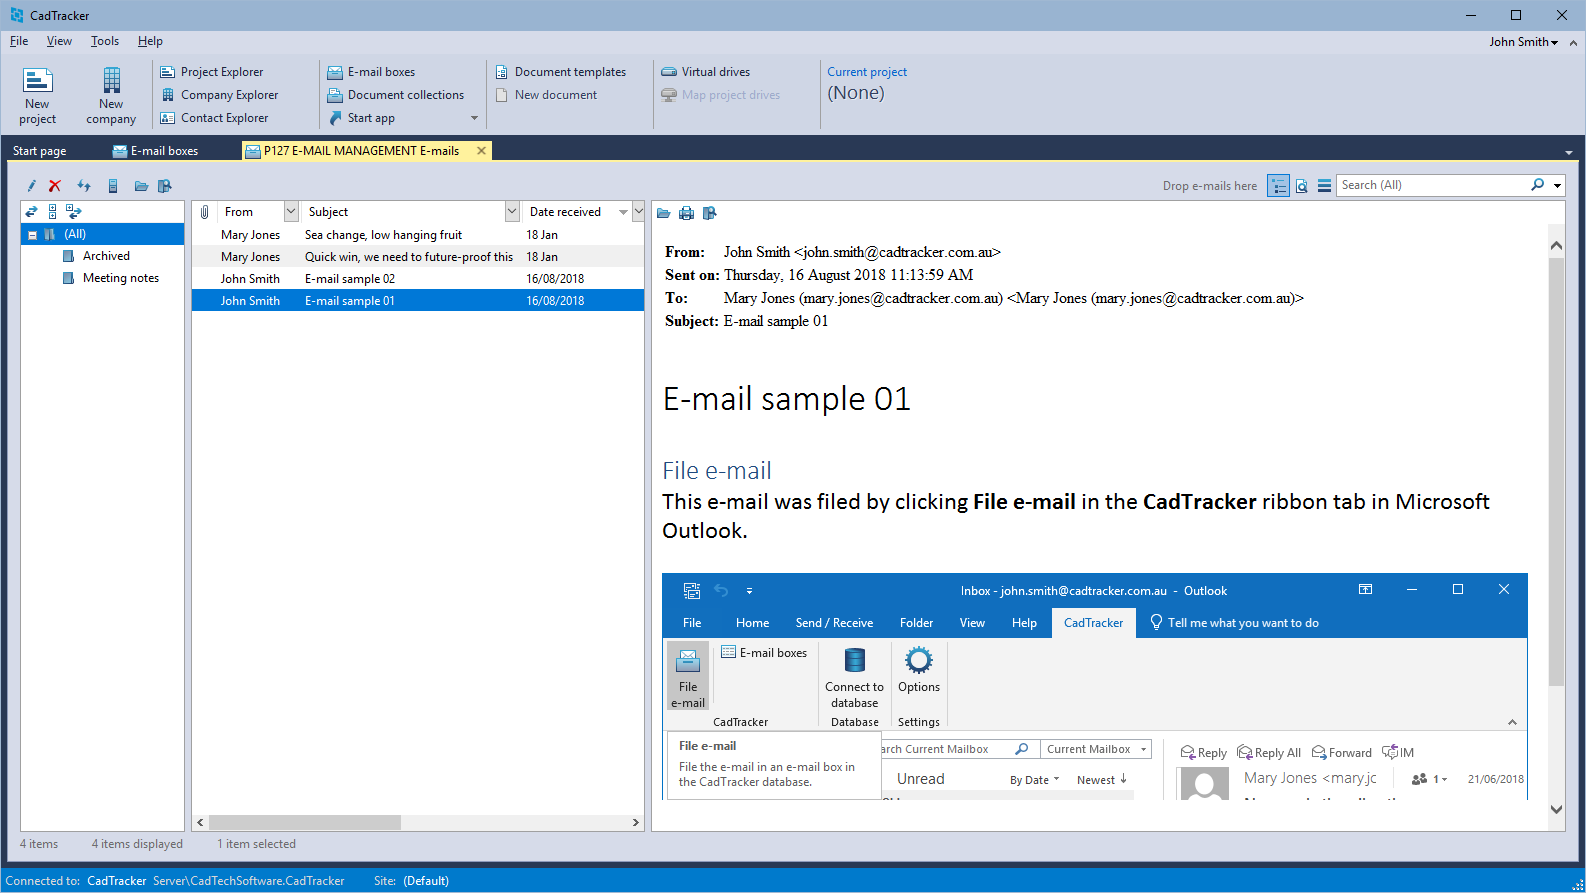 View filed e-mails in CadTracker